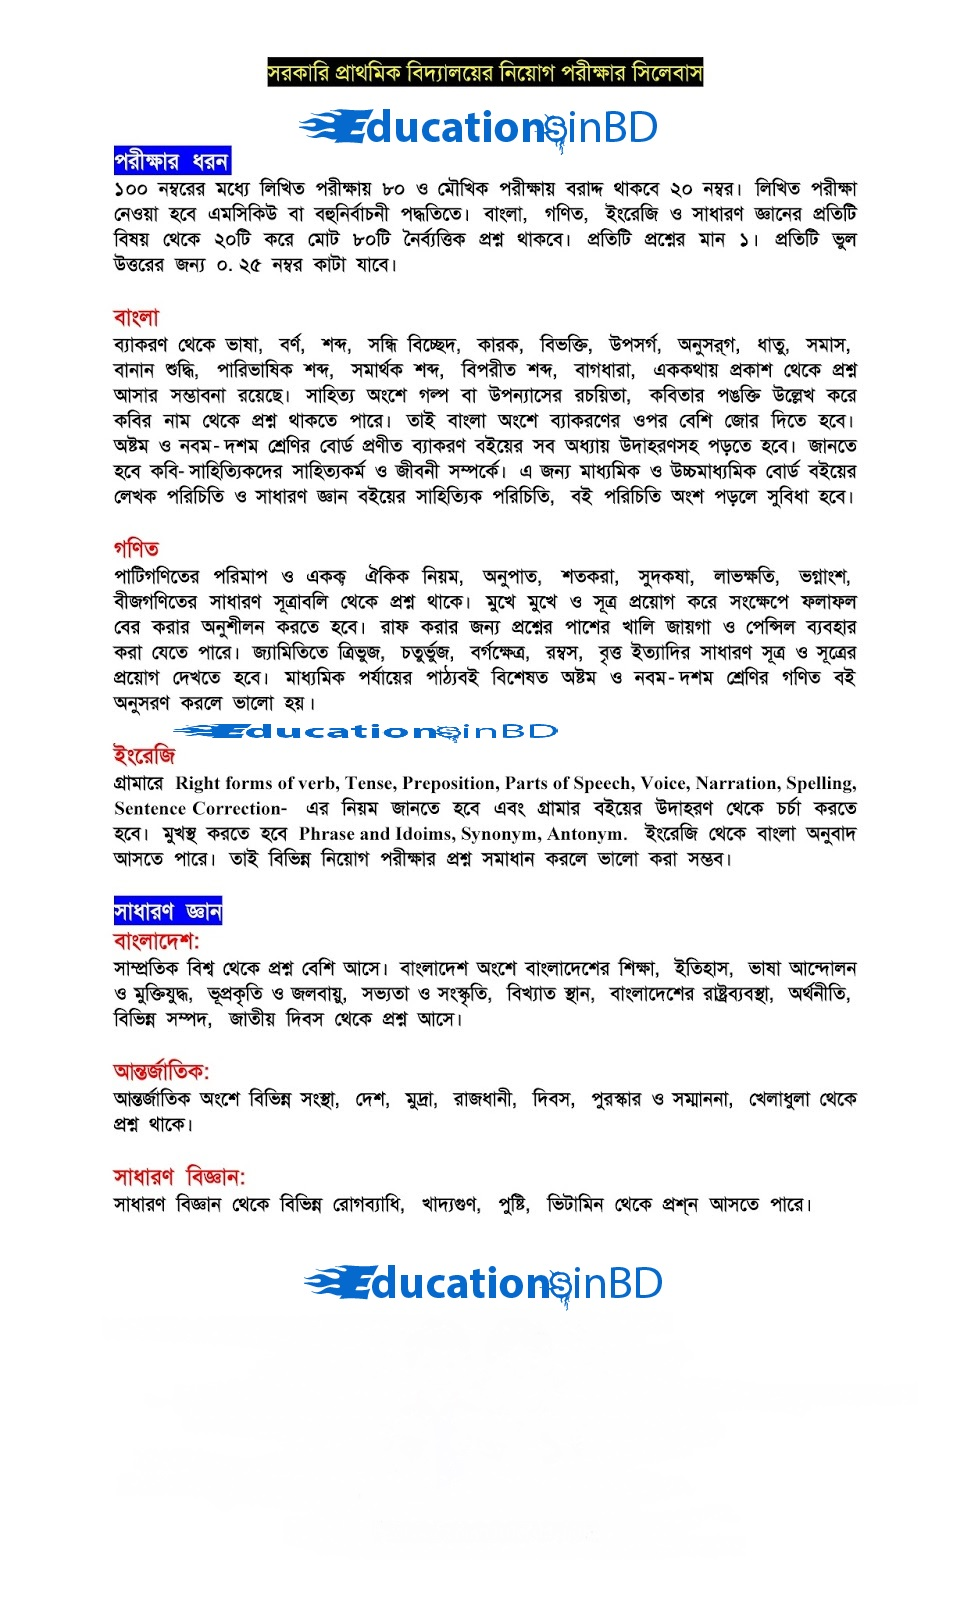 Primary School Assistant Teacher Exam Syllabus And Mark Distribution 2020